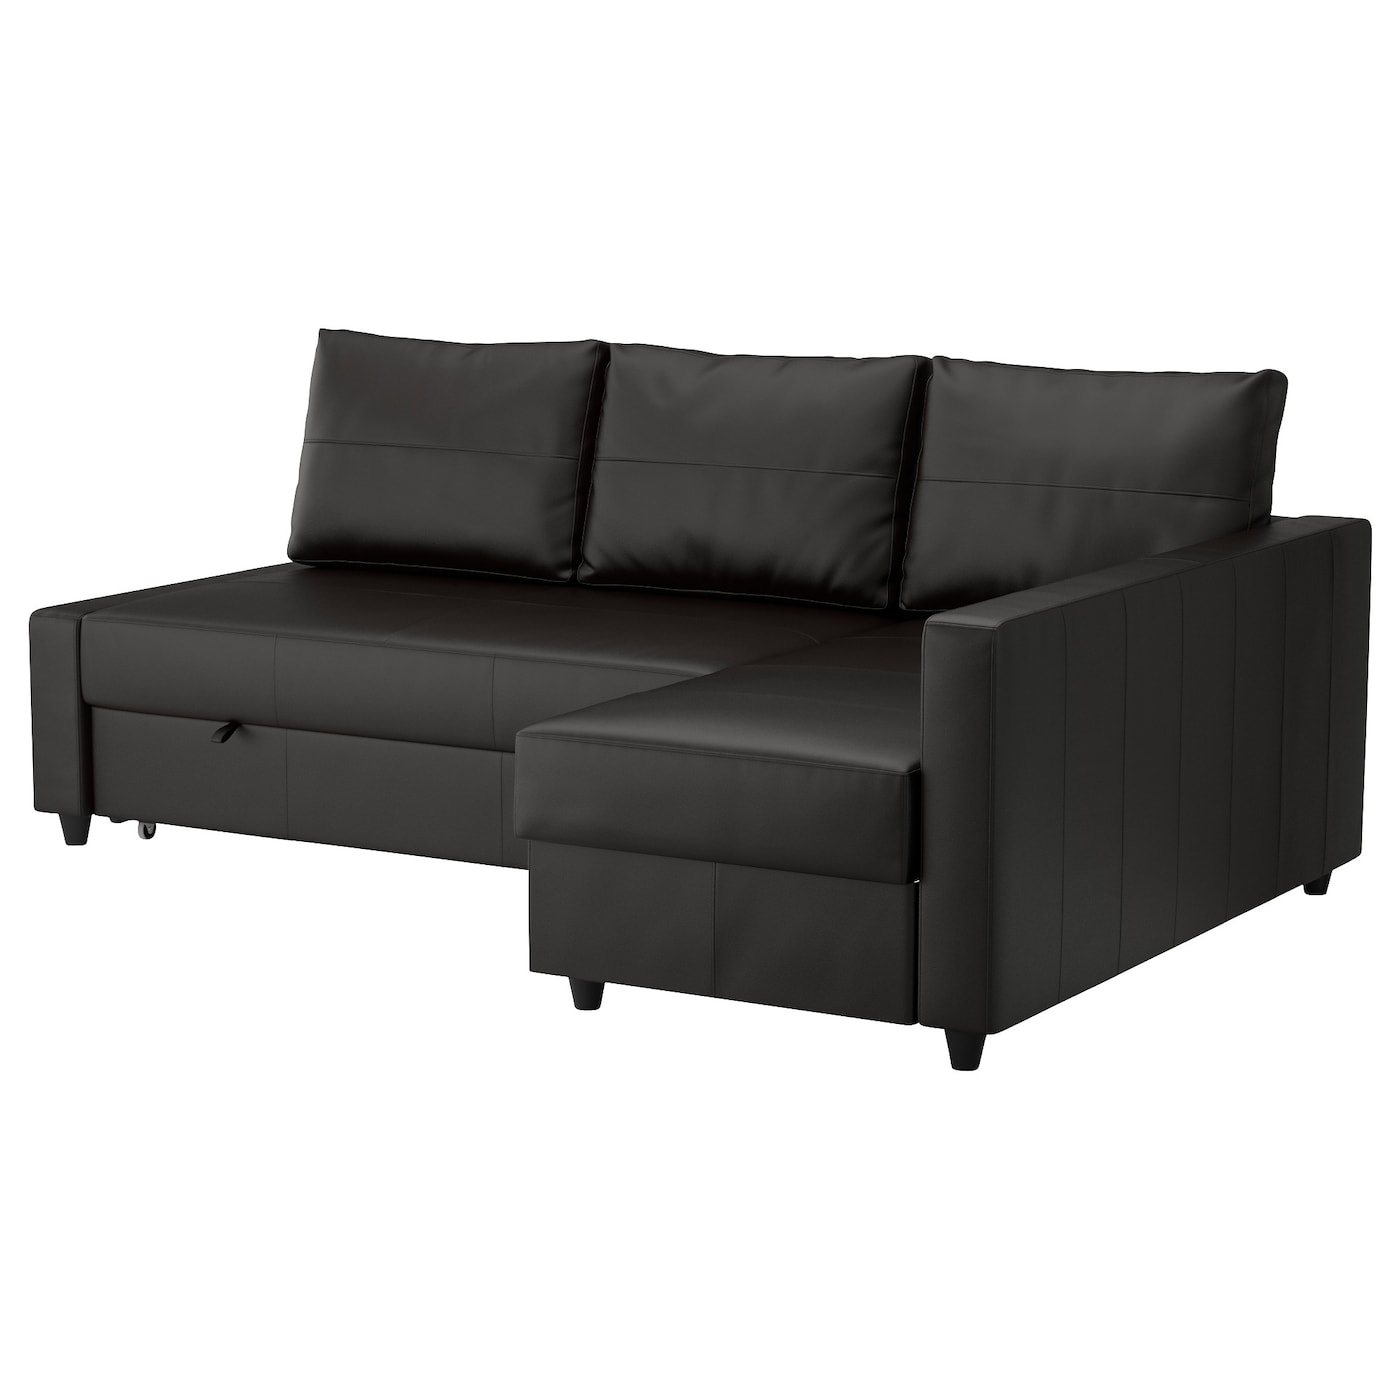 Merveilleux IKEA FRIHETEN Corner Sofa Bed With Storage Sofa, Chaise Longue And Double  Bed In